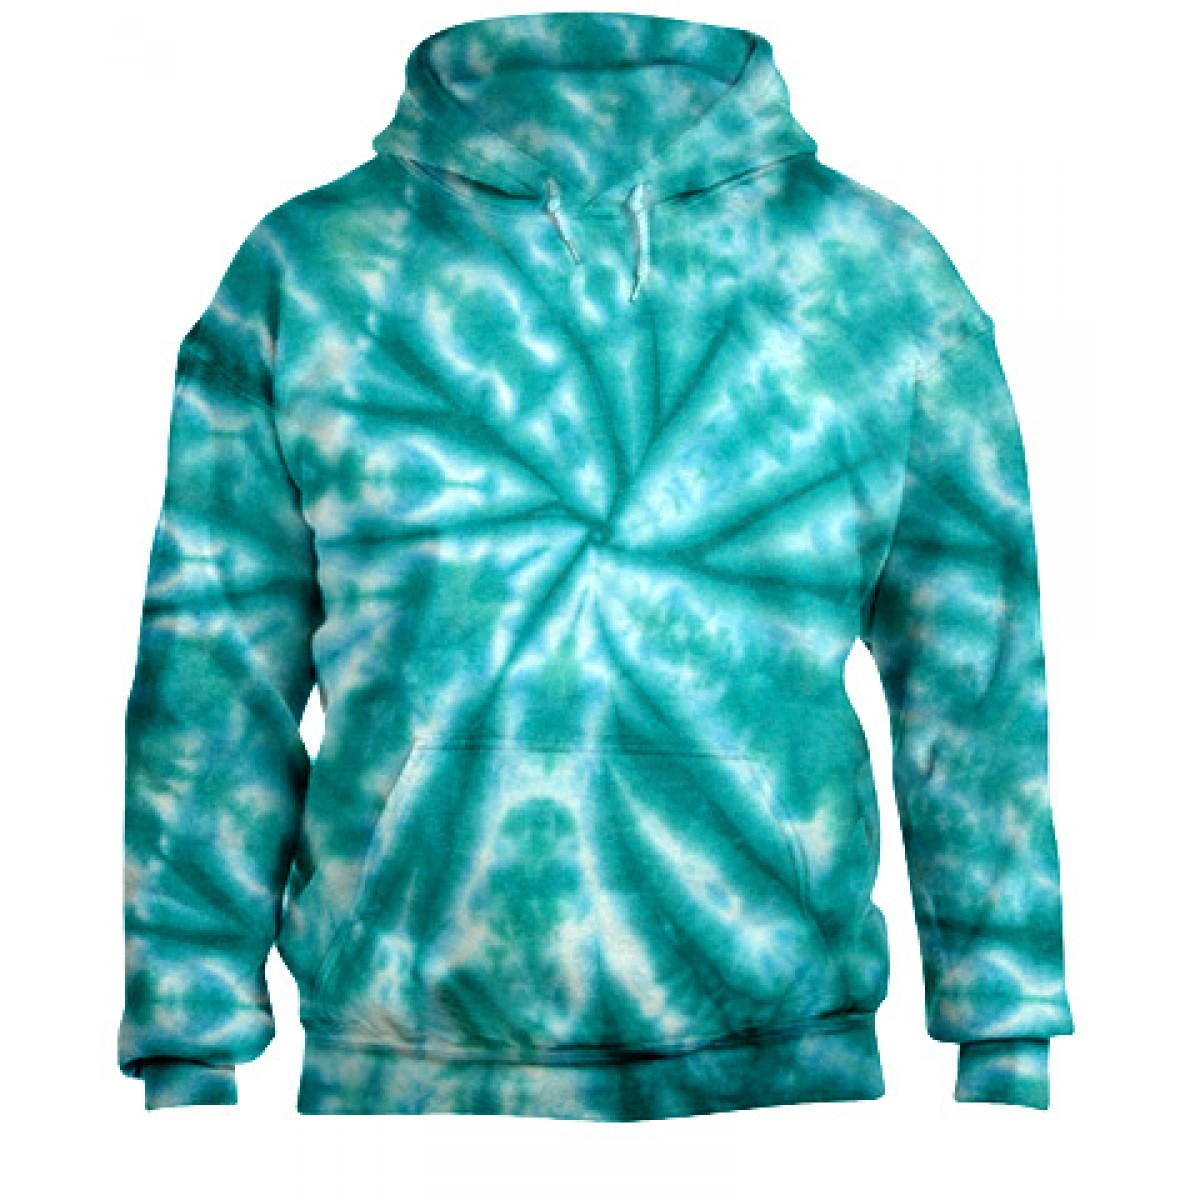 Tie-Dye Pullover Hooded Sweatshirt-Jade-XL